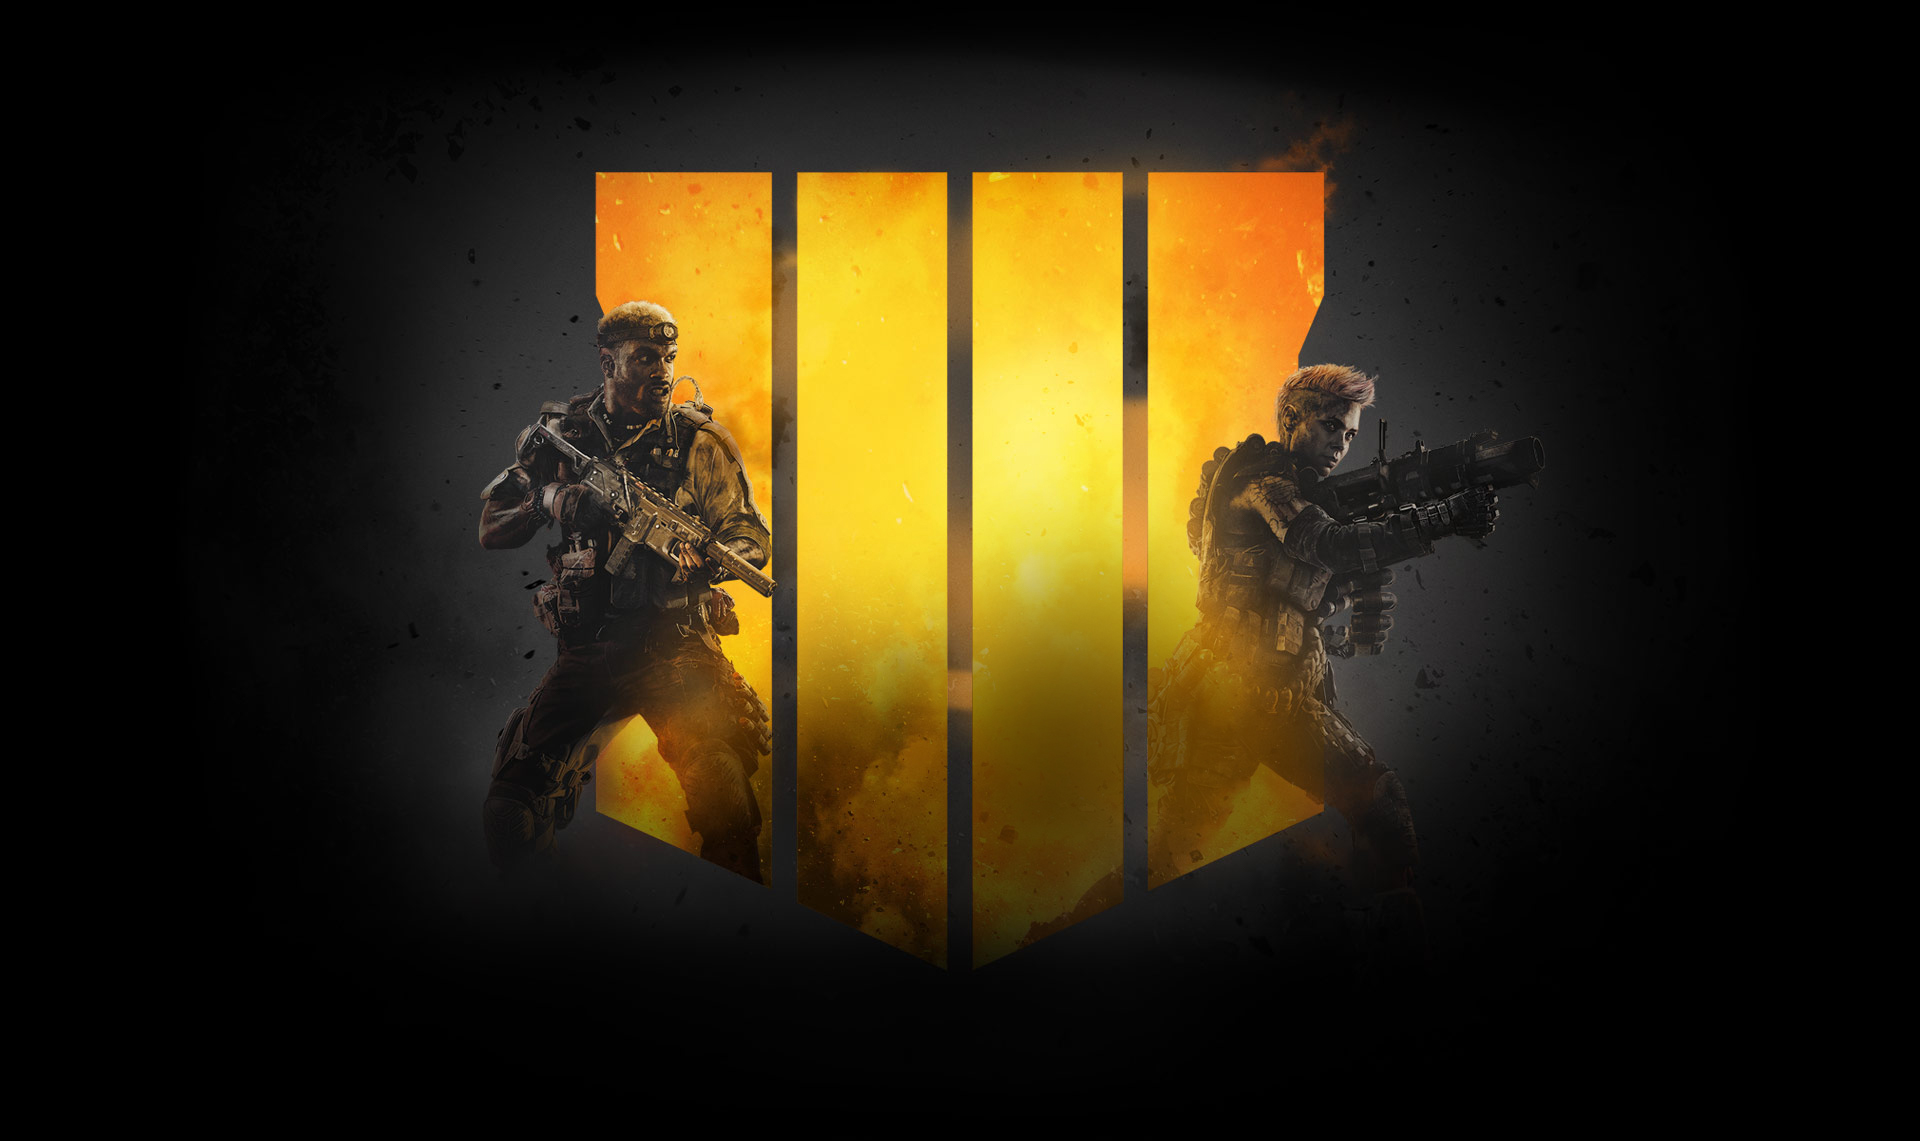 Call of Duty: Black Ops 4 Beta Trailer Delivers Hot Action and a New Battle Royale Tease